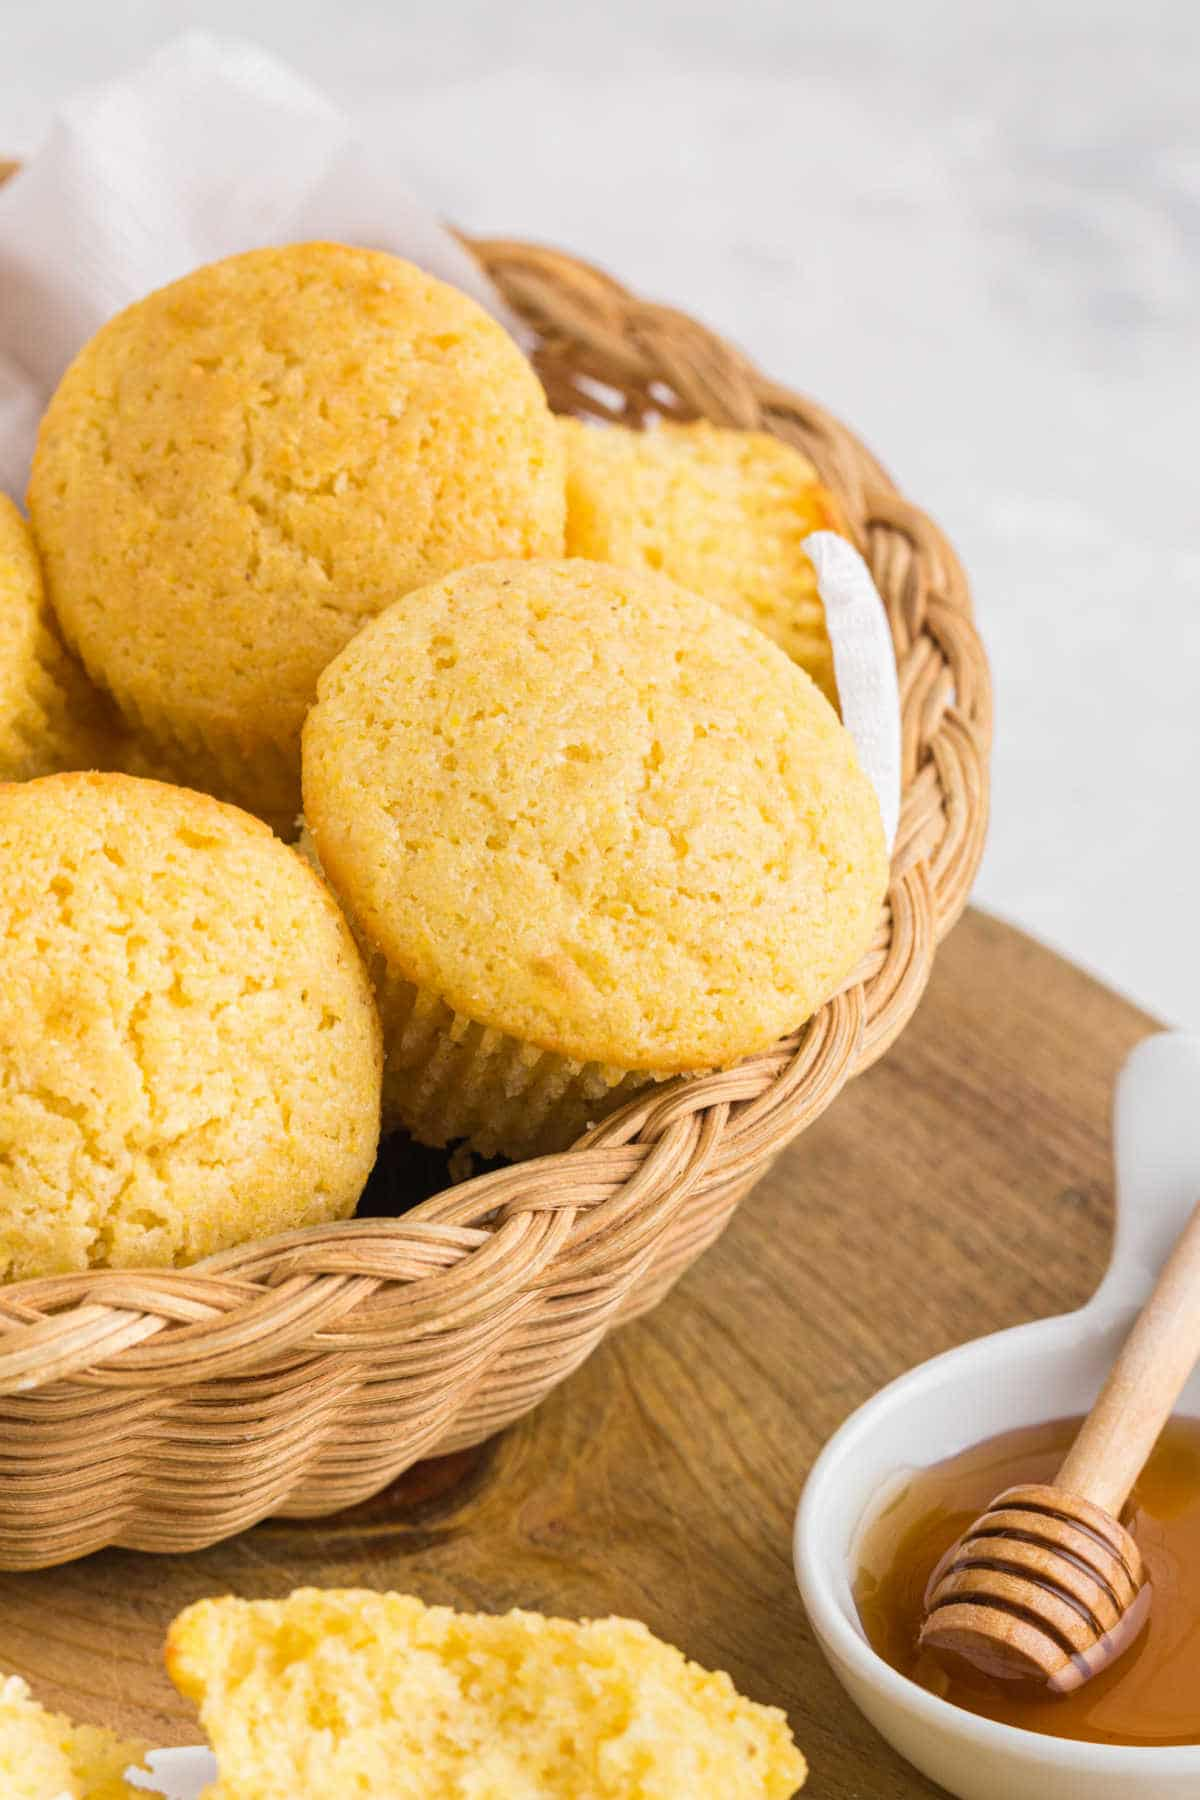 Basket of cornbread muffins next to a dish of honey.